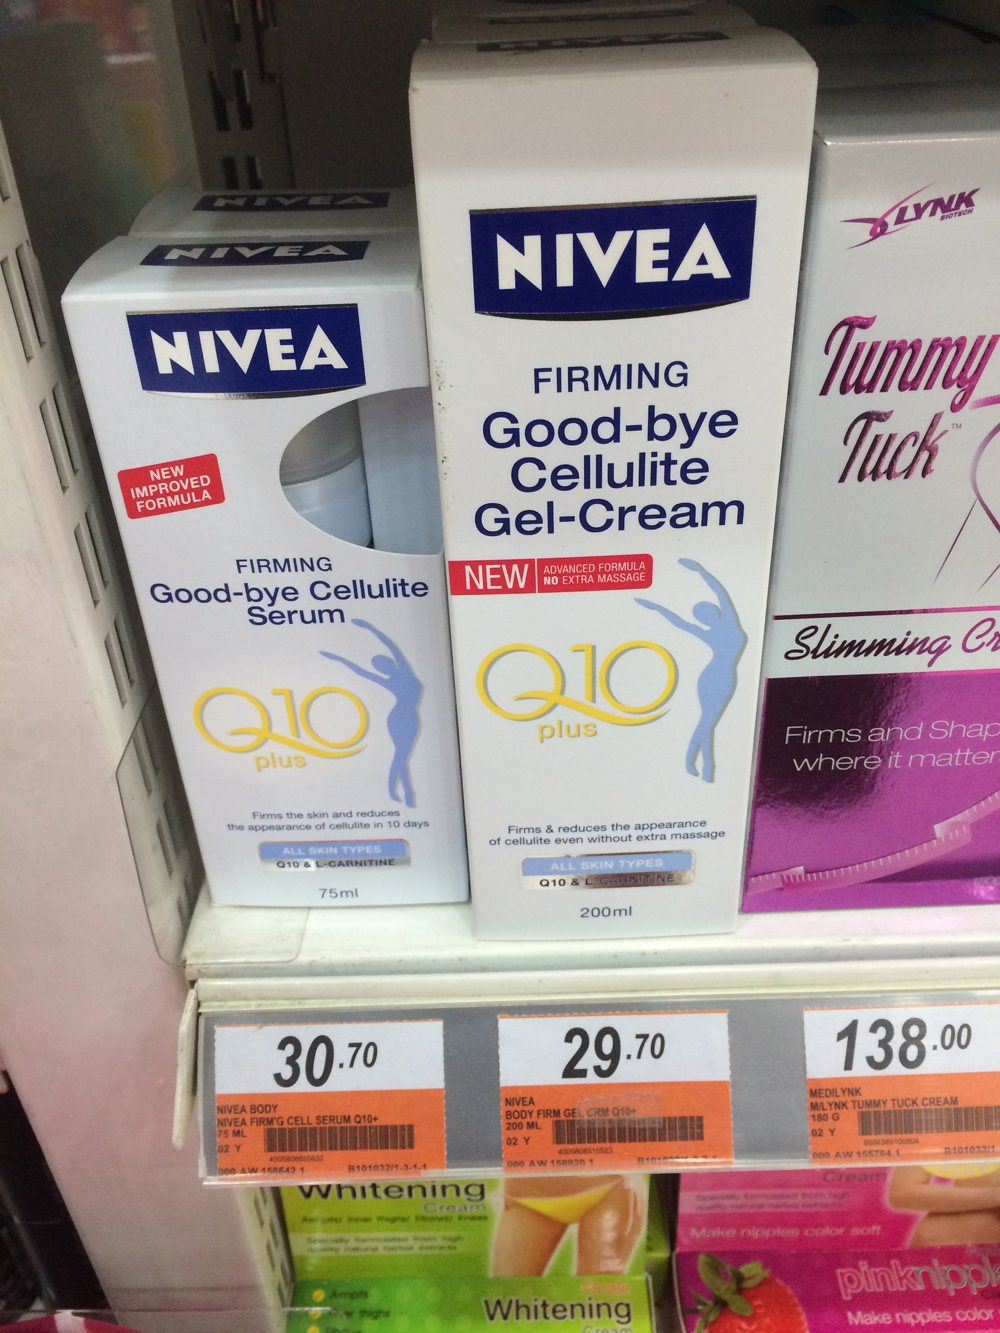 Nivea Q10 Firming Lotion Coupon / Juicy Couture Printable Coupon 2018 - Free Printable Nivea Coupons